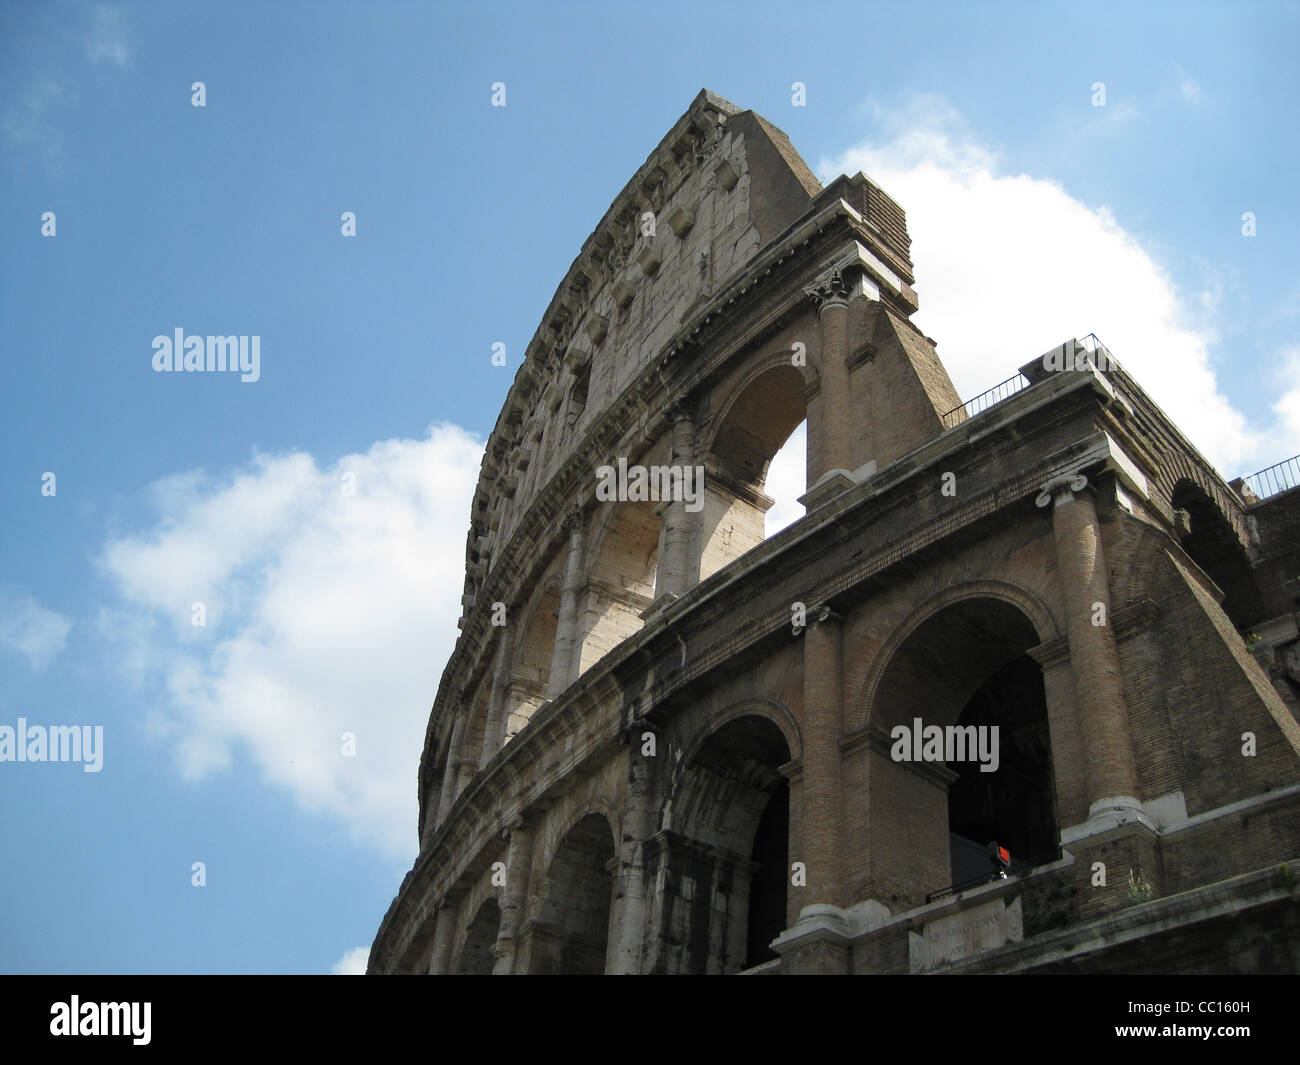 Broken wall of the Colloseum against clouds - Stock Image